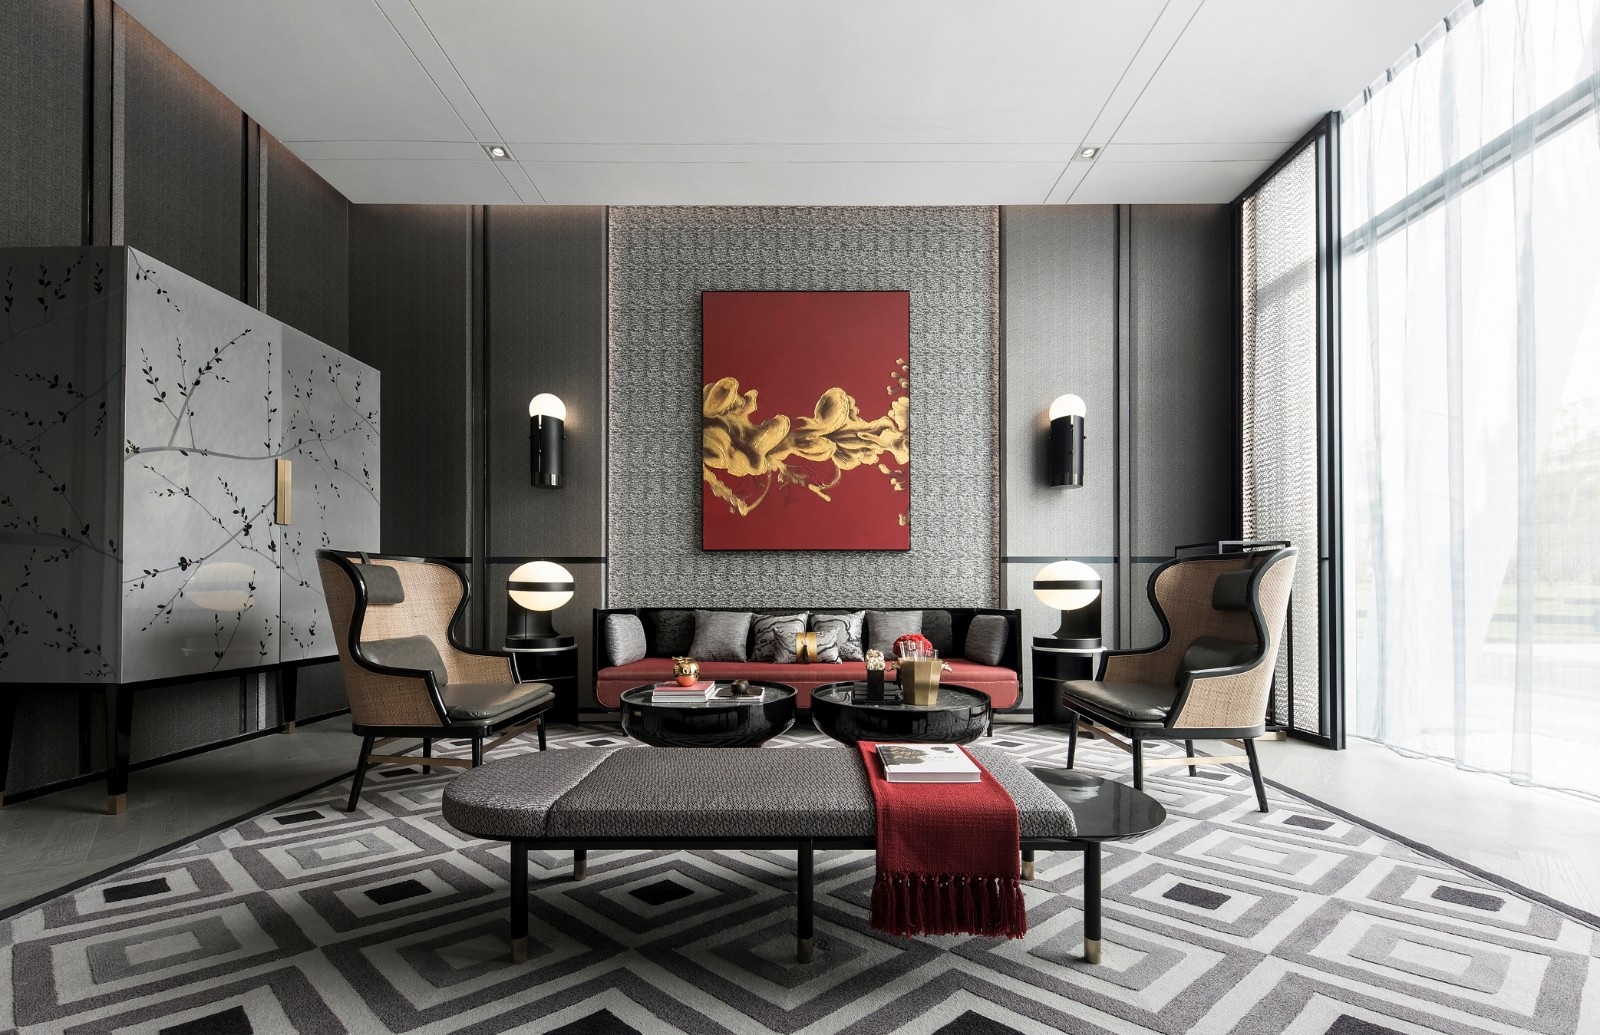 Modern Oriental Chinese living room with a gray backdrop, contemporary furniture, red accent textiles, and red portrait decor